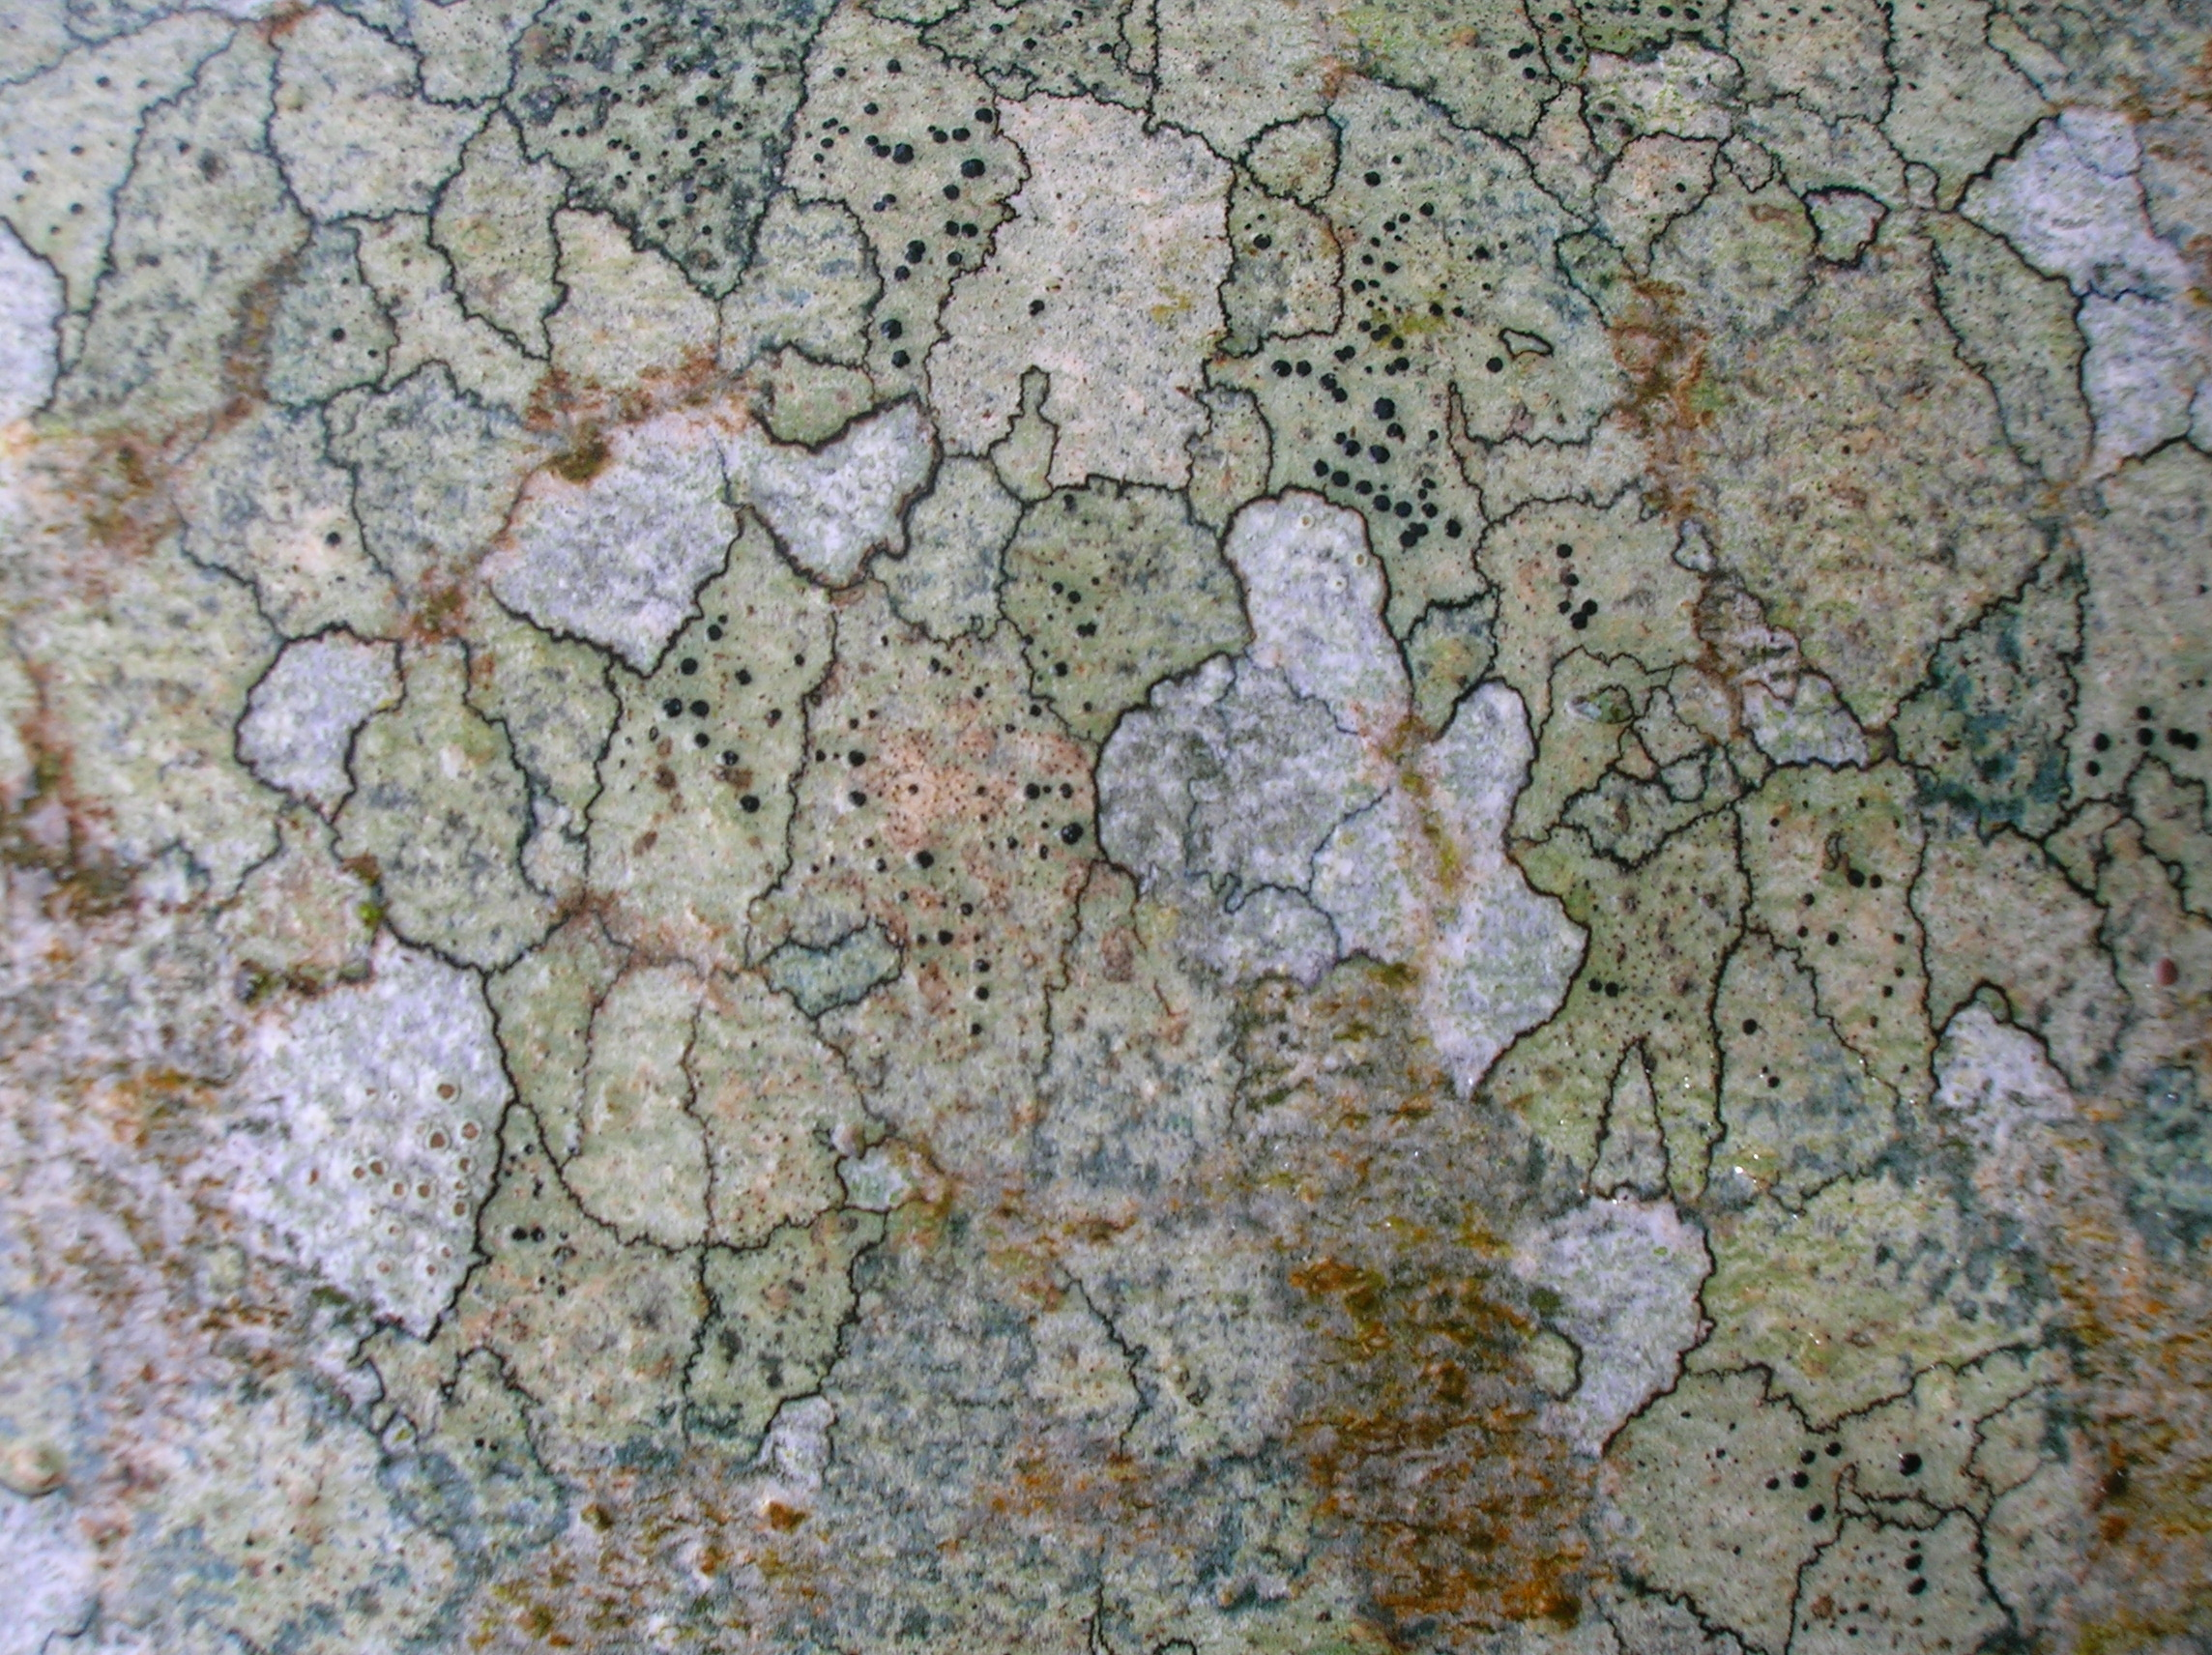 Lichen_patterns_on_an_Ash_tree